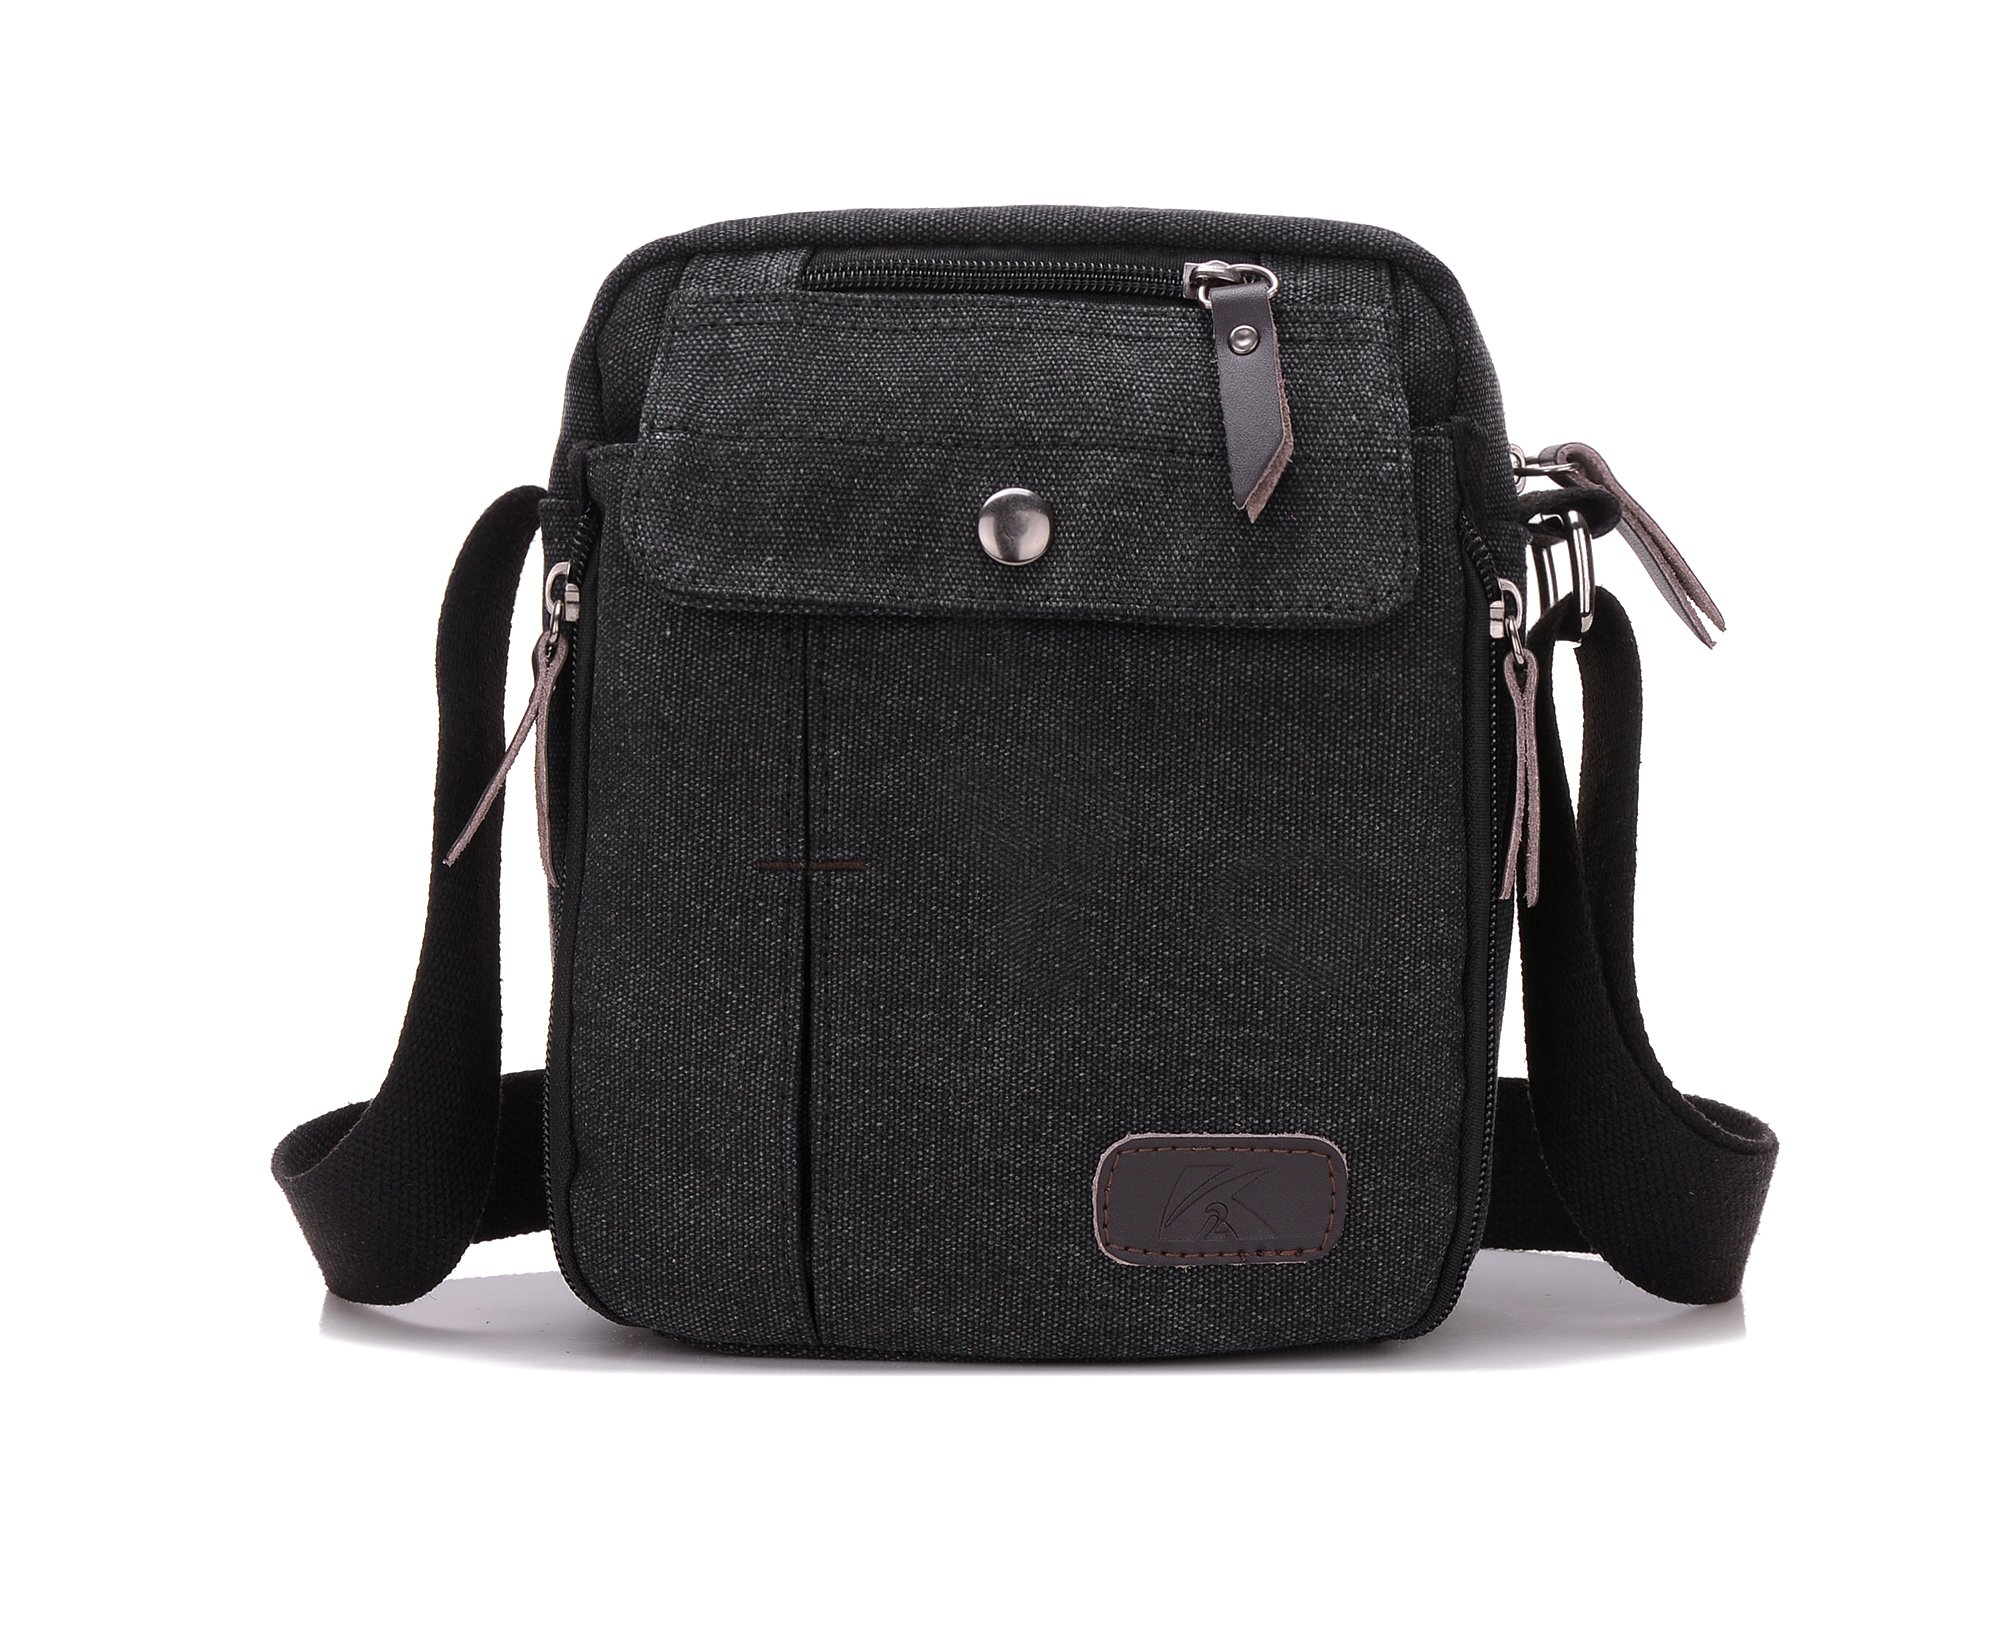 Heavy-Duty Canvas Small Messenger Bag Classic Multi-pocket Mini Shoulder Crossbody Bags Travel Purse by Haoguagua (Image #1)